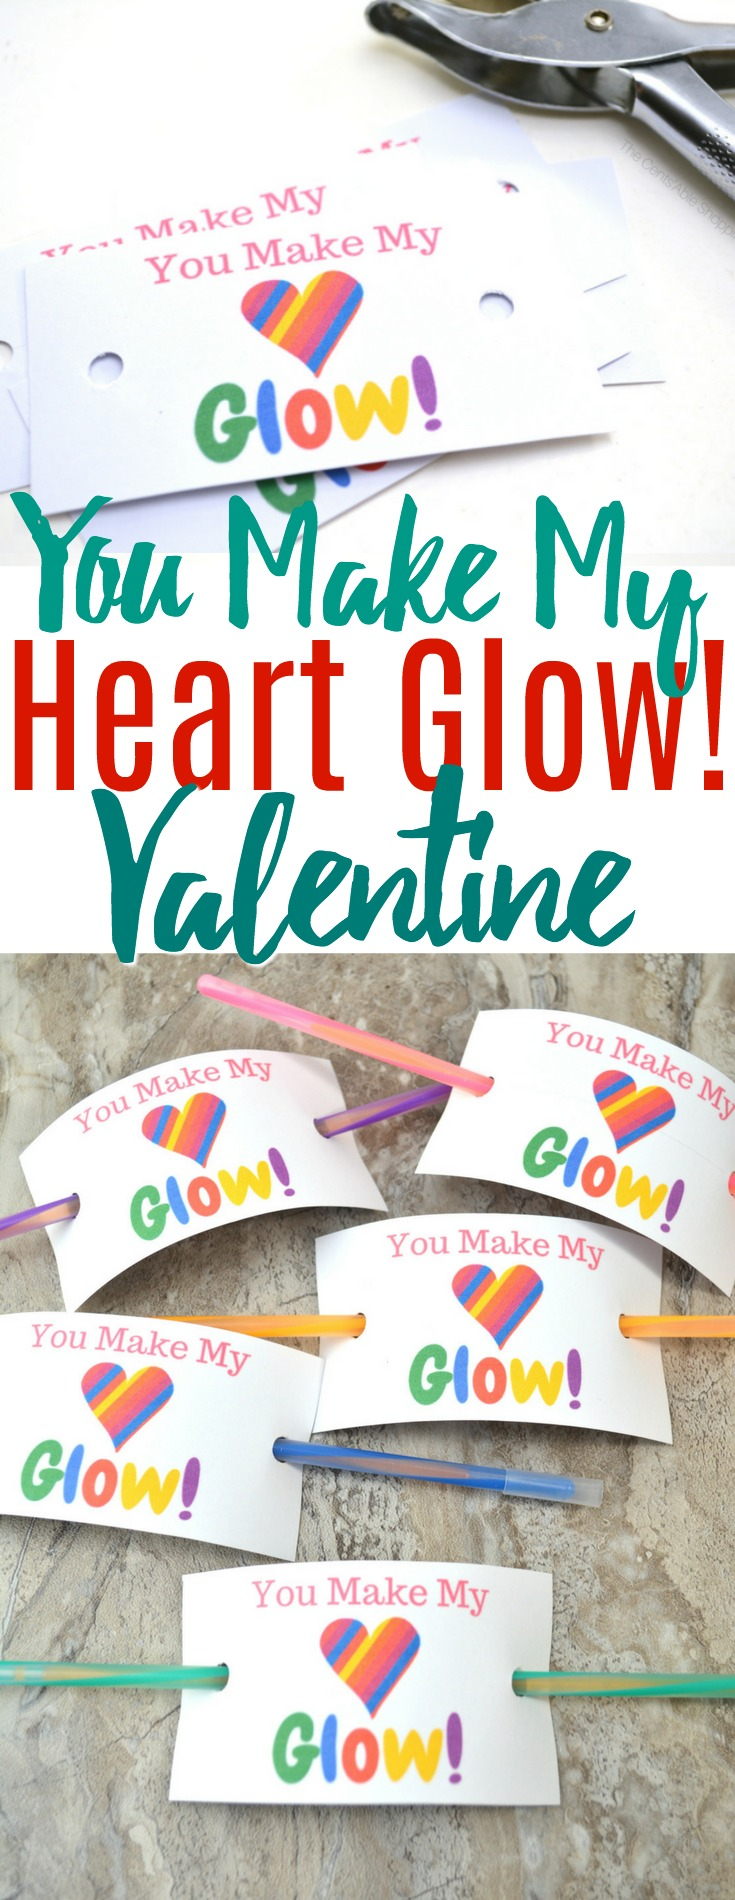 These glow stick Valentine cards are an easy, creative alternative to candy this Valentine's Day and will be loved by kids of all ages! #glowstick #valentine #ValentinesDay #noncandy #printable #freevalentine